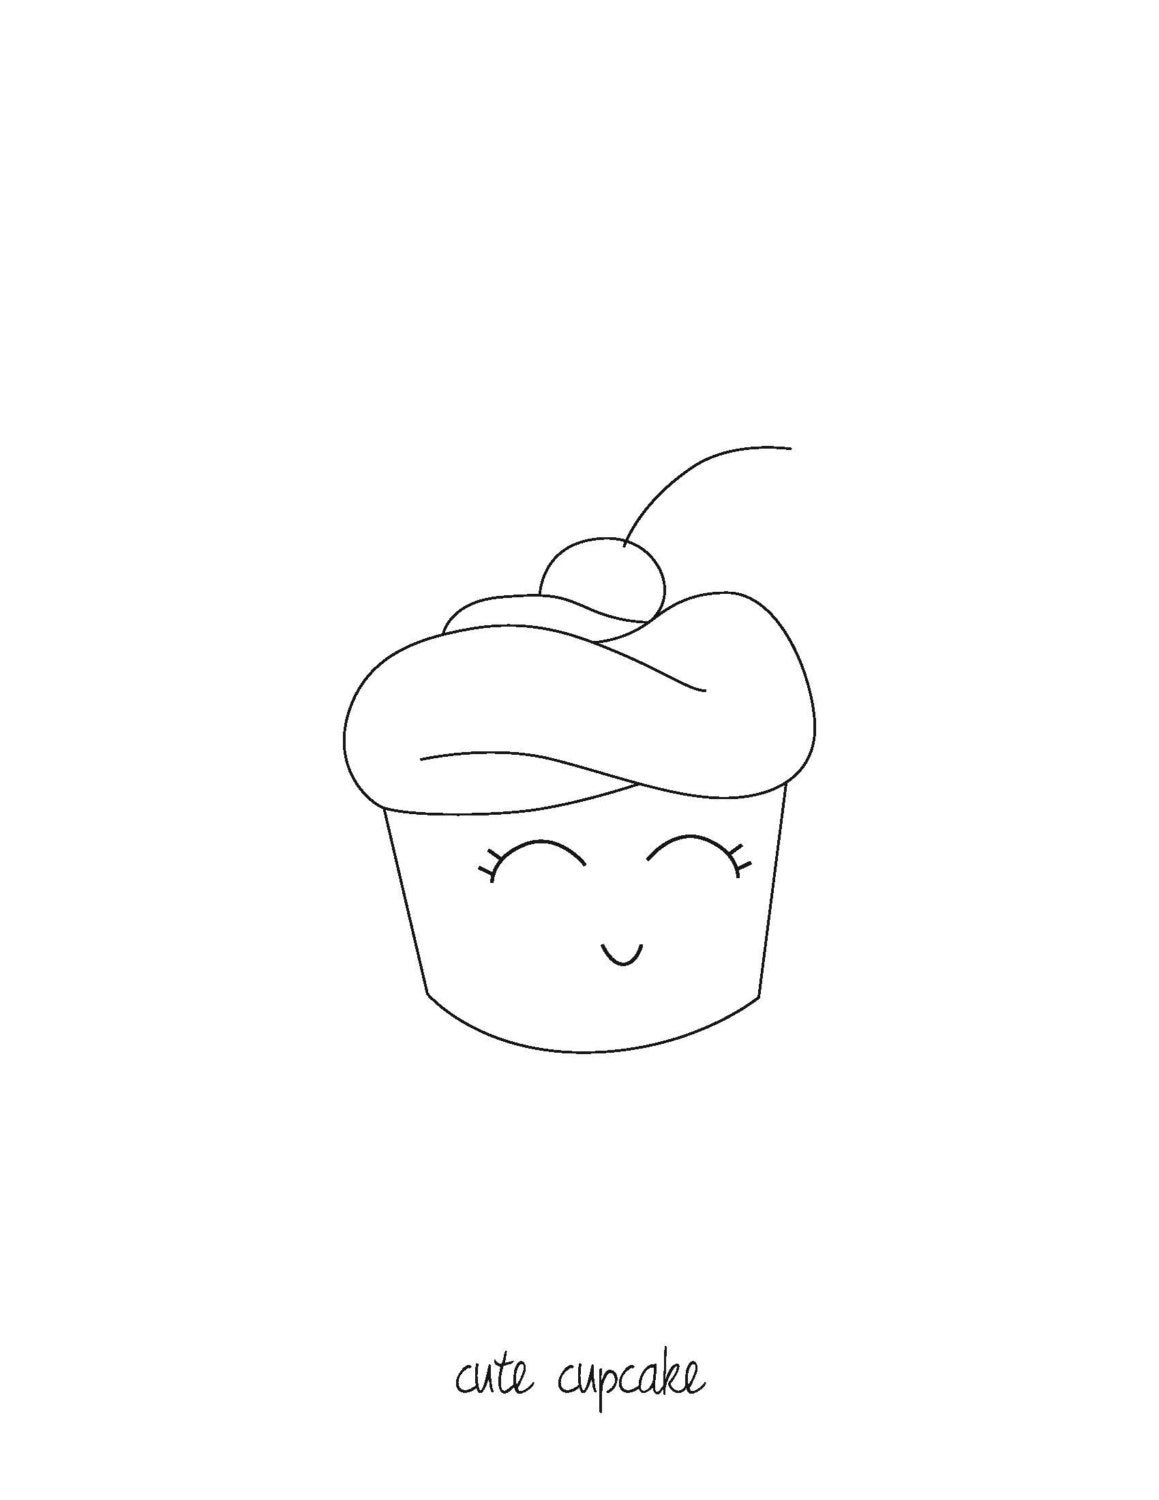 Items Similar To Downloadable Coloring Page